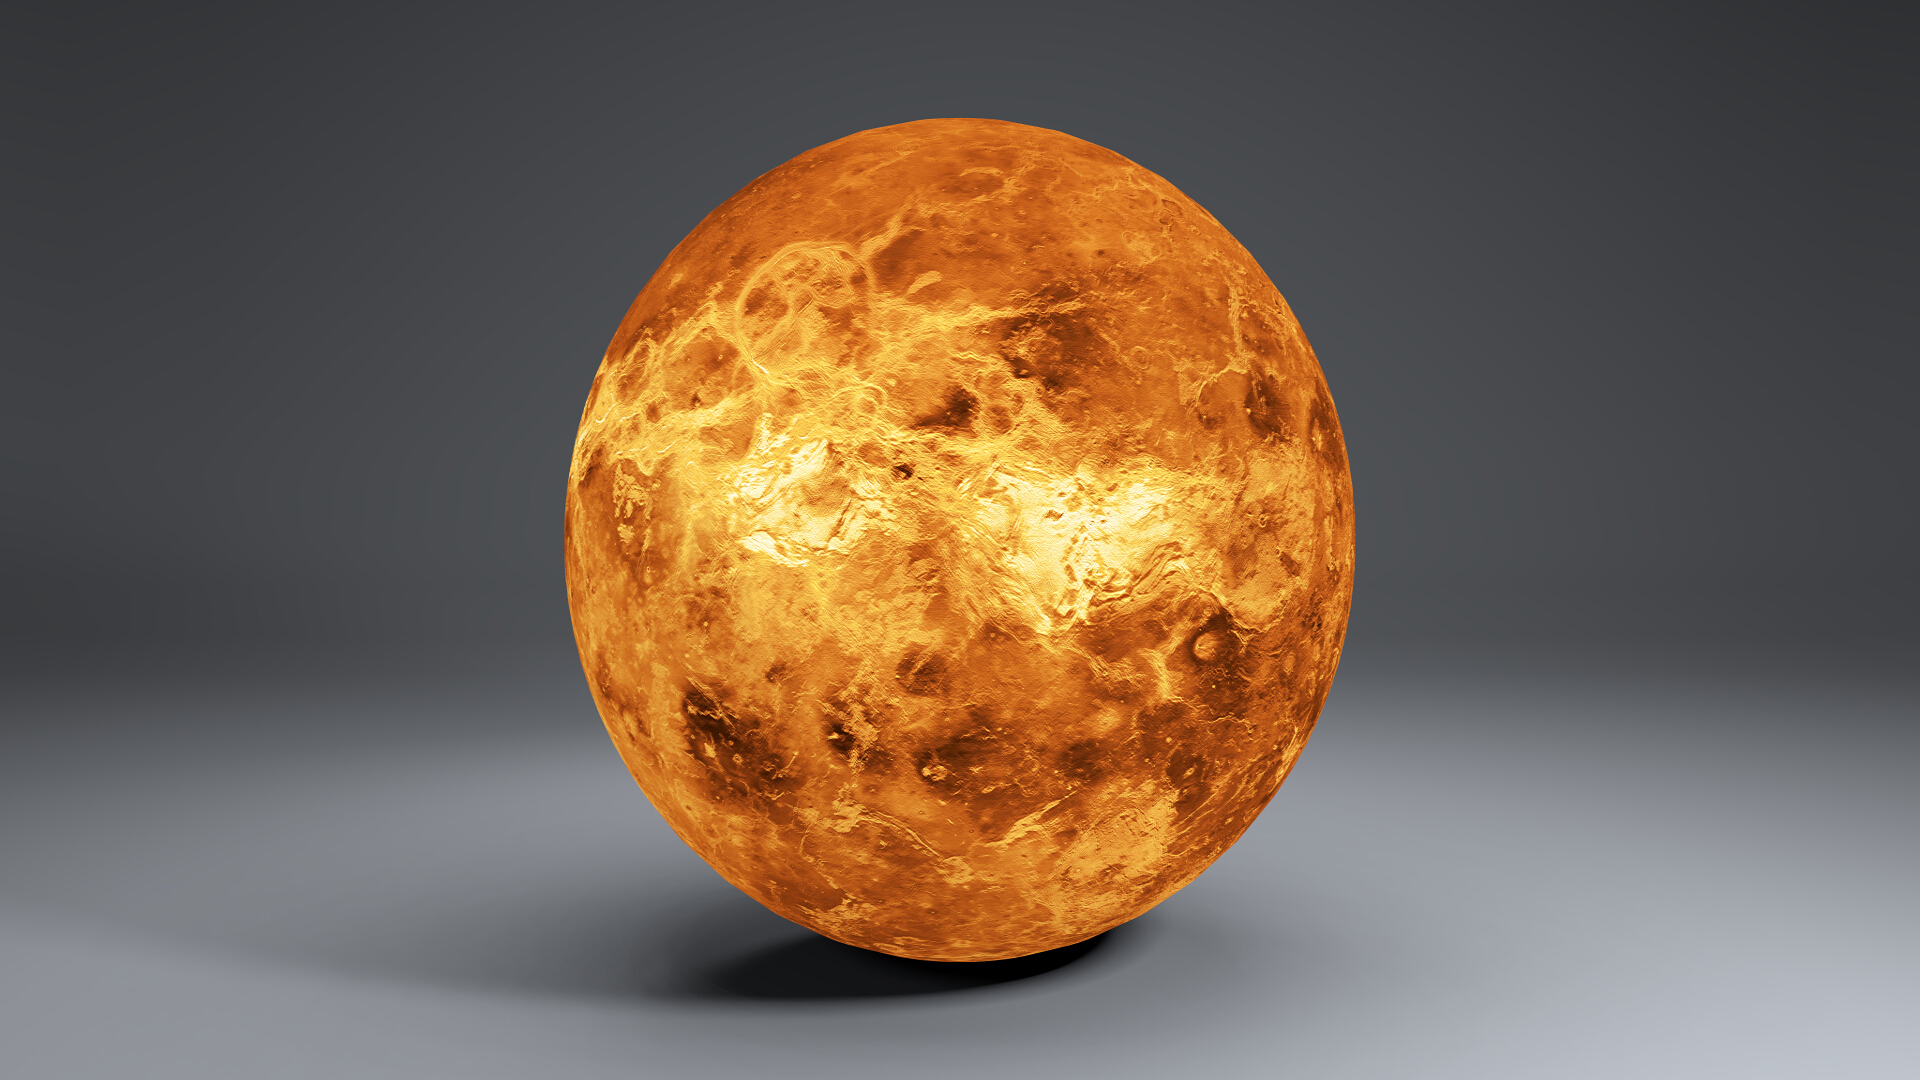 venus globe 8k 3d model 3ds fbx blend dae obj 267715